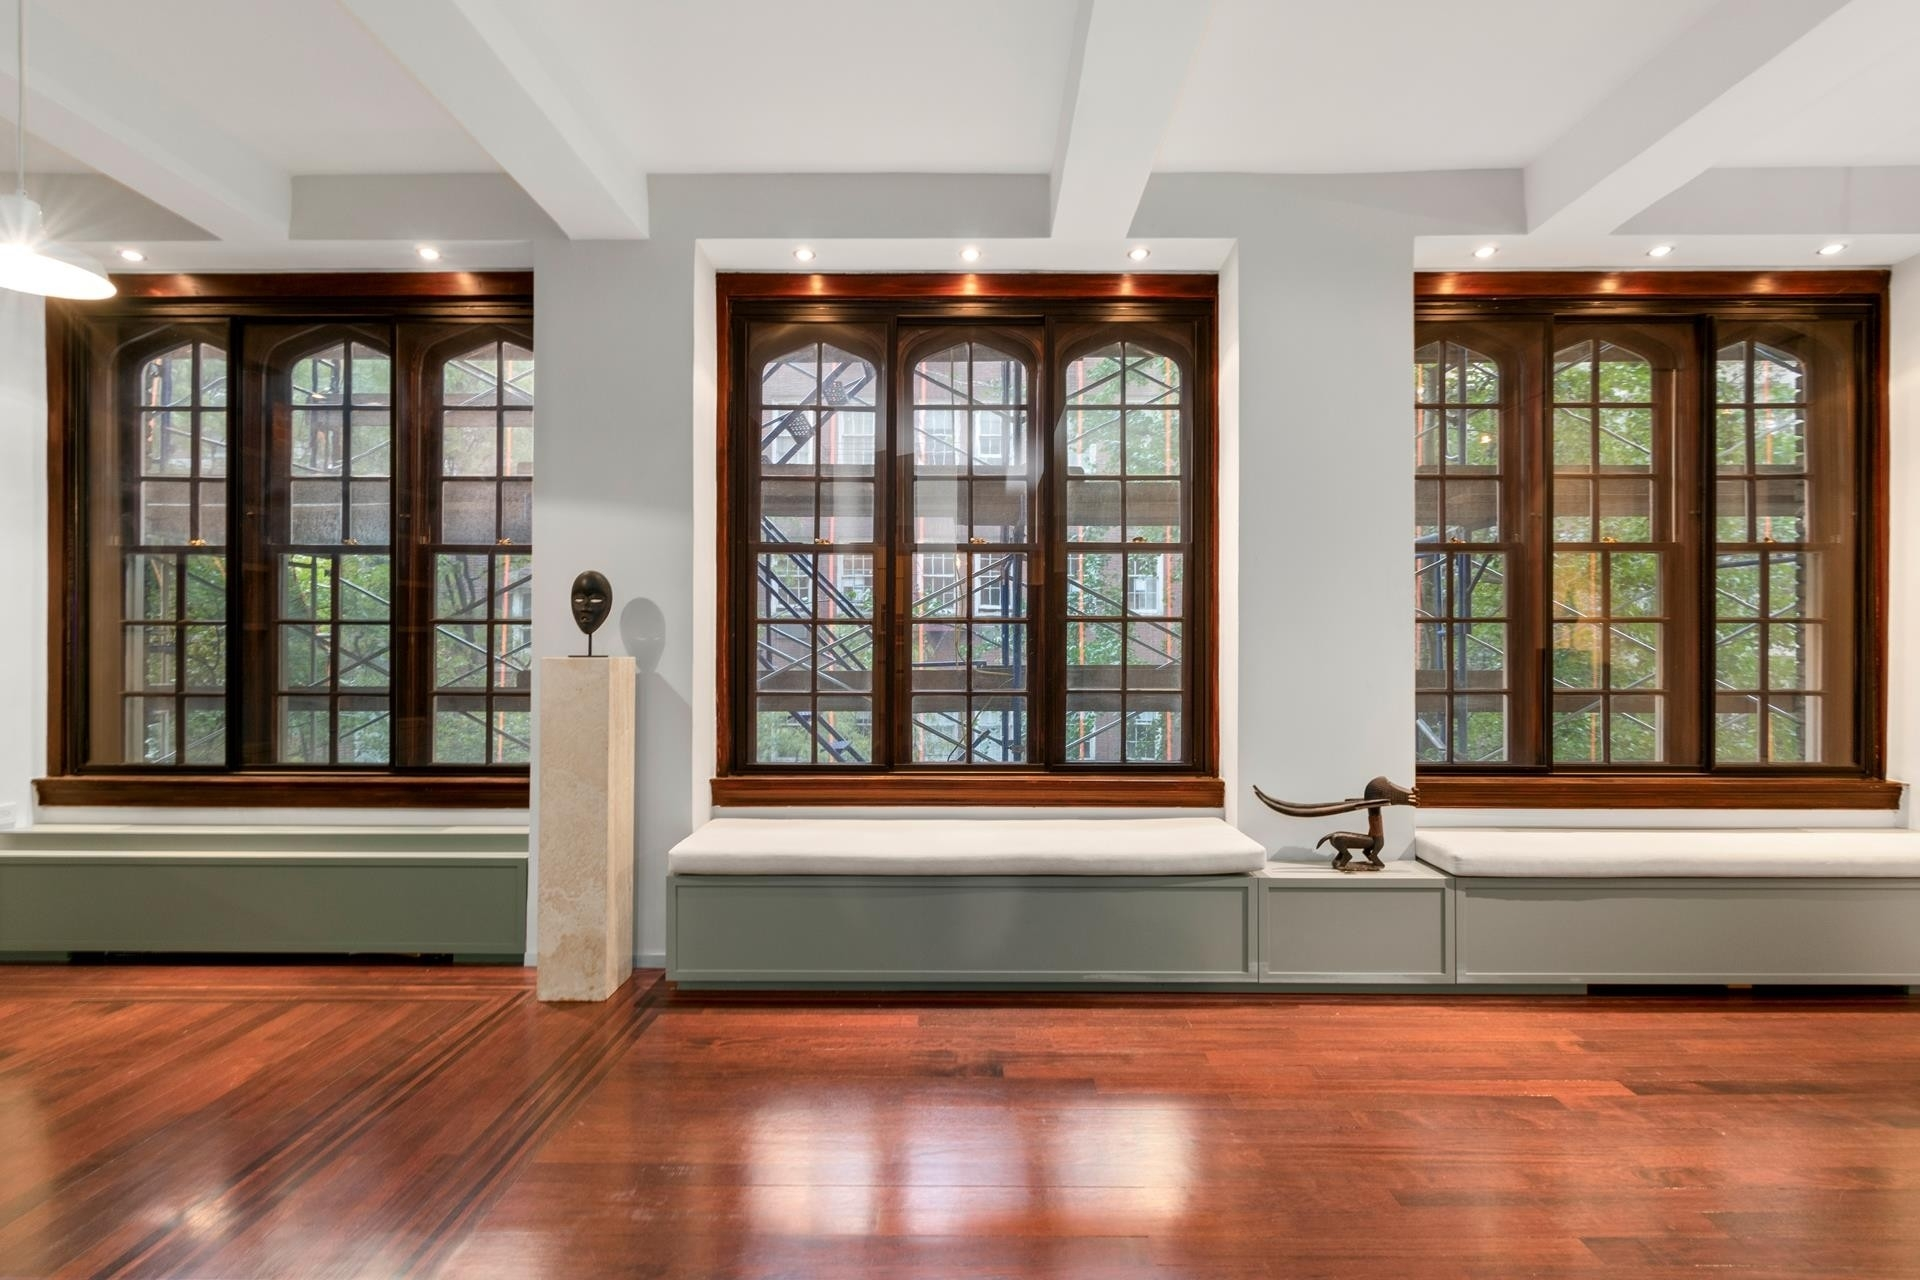 Co-op Properties for Sale at Finch Bldg, 52 East 78th St, 3ABC Upper East Side, New York, NY 10021